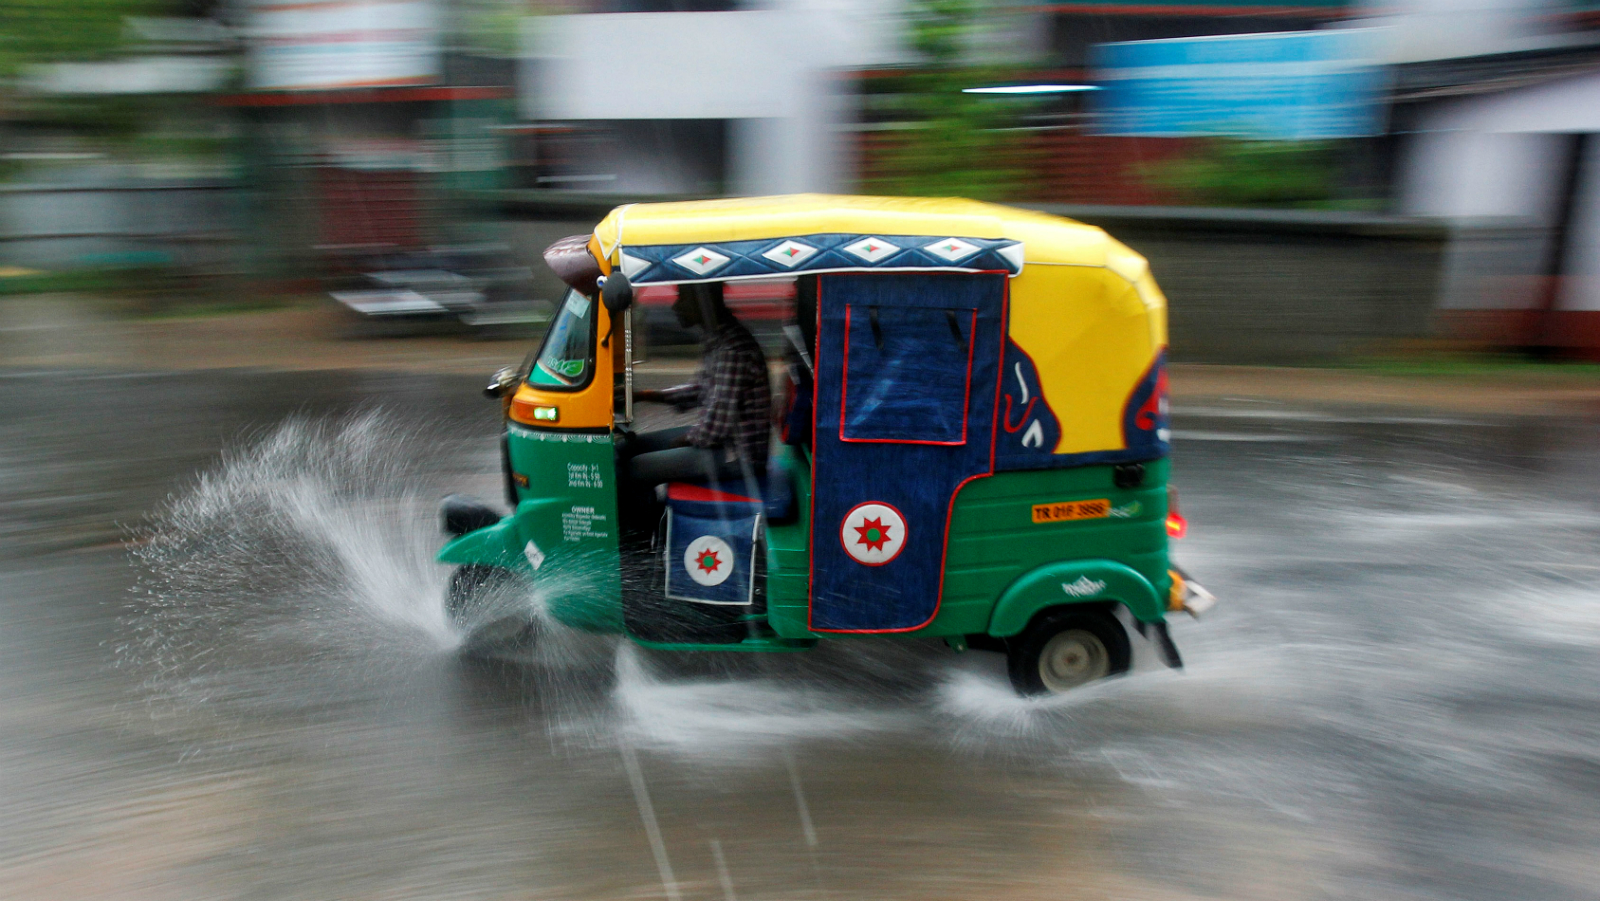 A person drives an auto rickshaw through heavy rains in Agartala, India June 1, 2017.